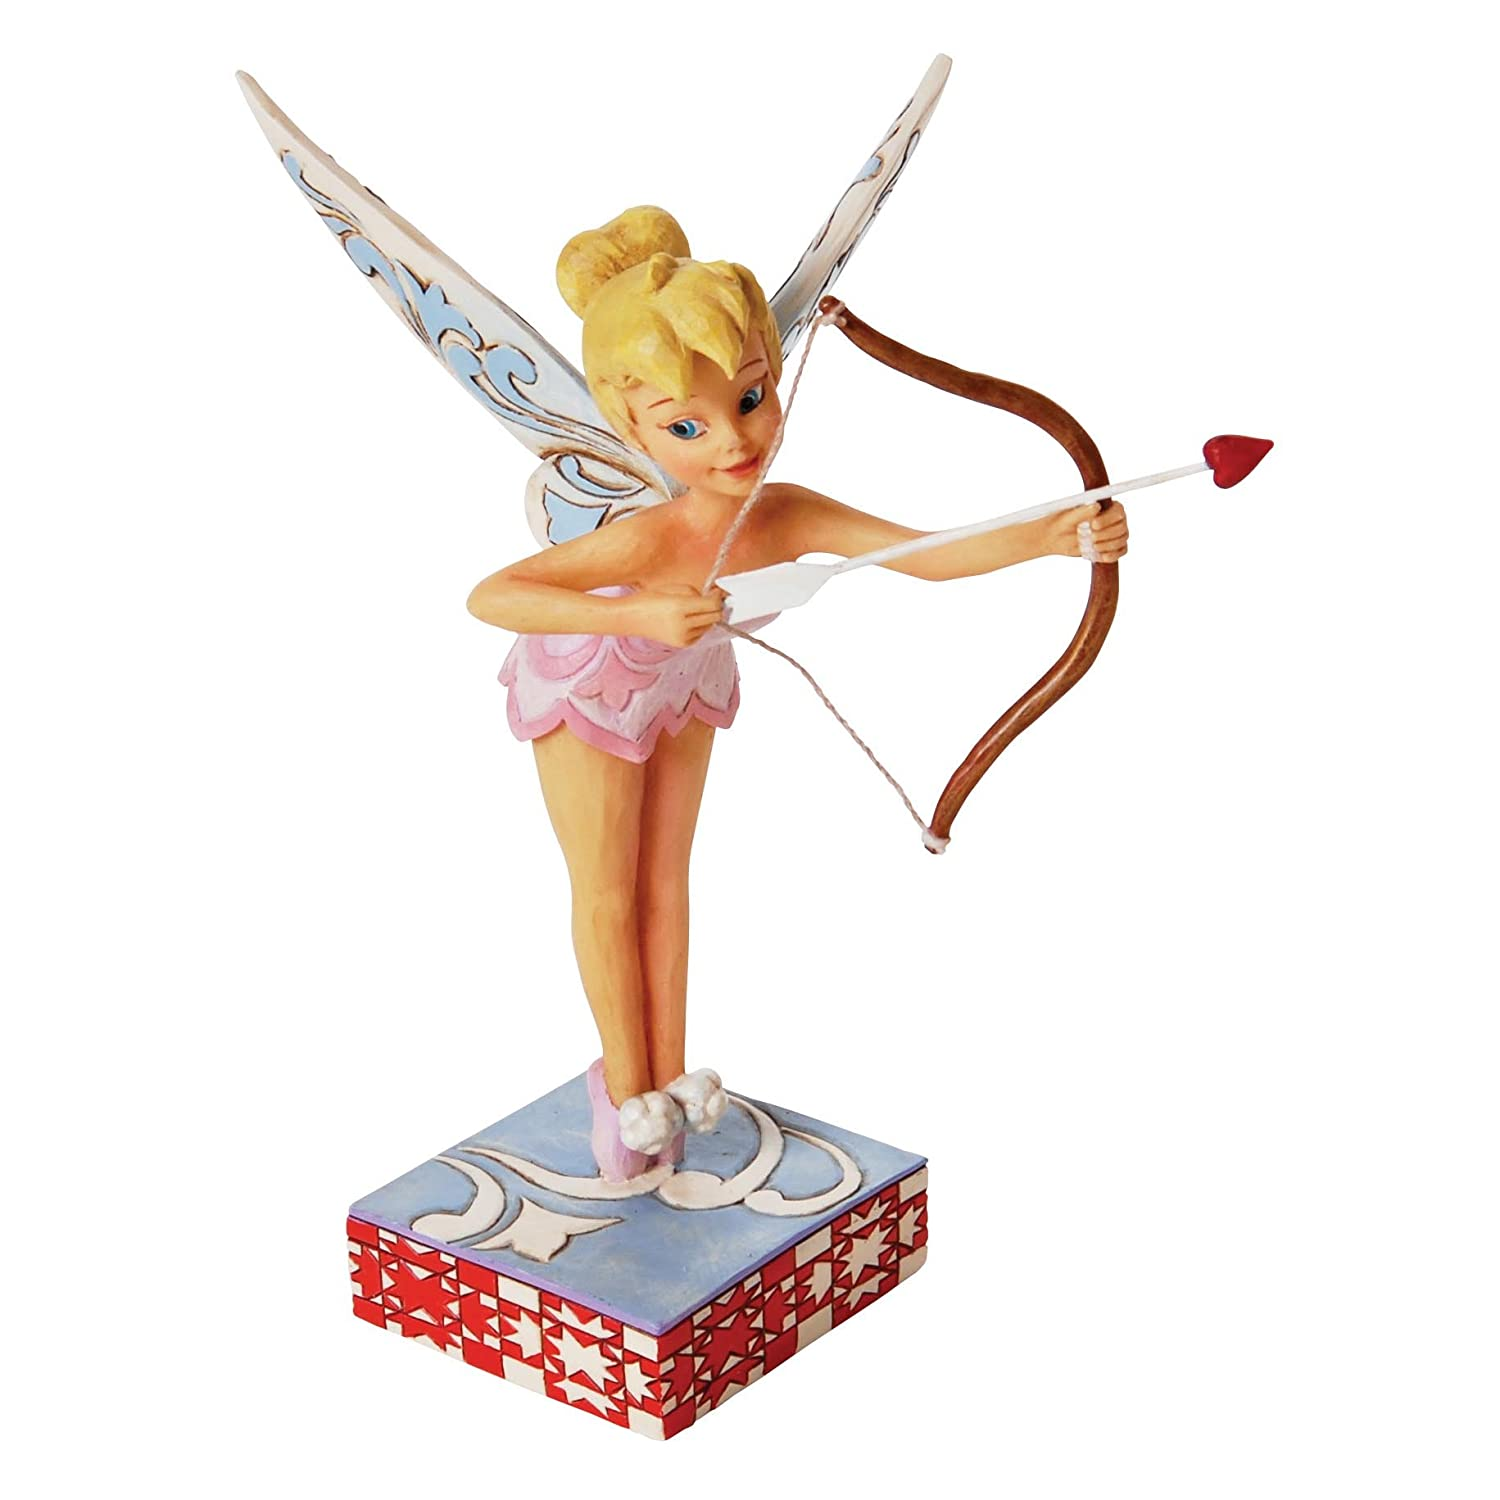 Disney traditions by jim shore tinker bell as cupid figurine love decor gift new ebay - Tinkerbell statues ...